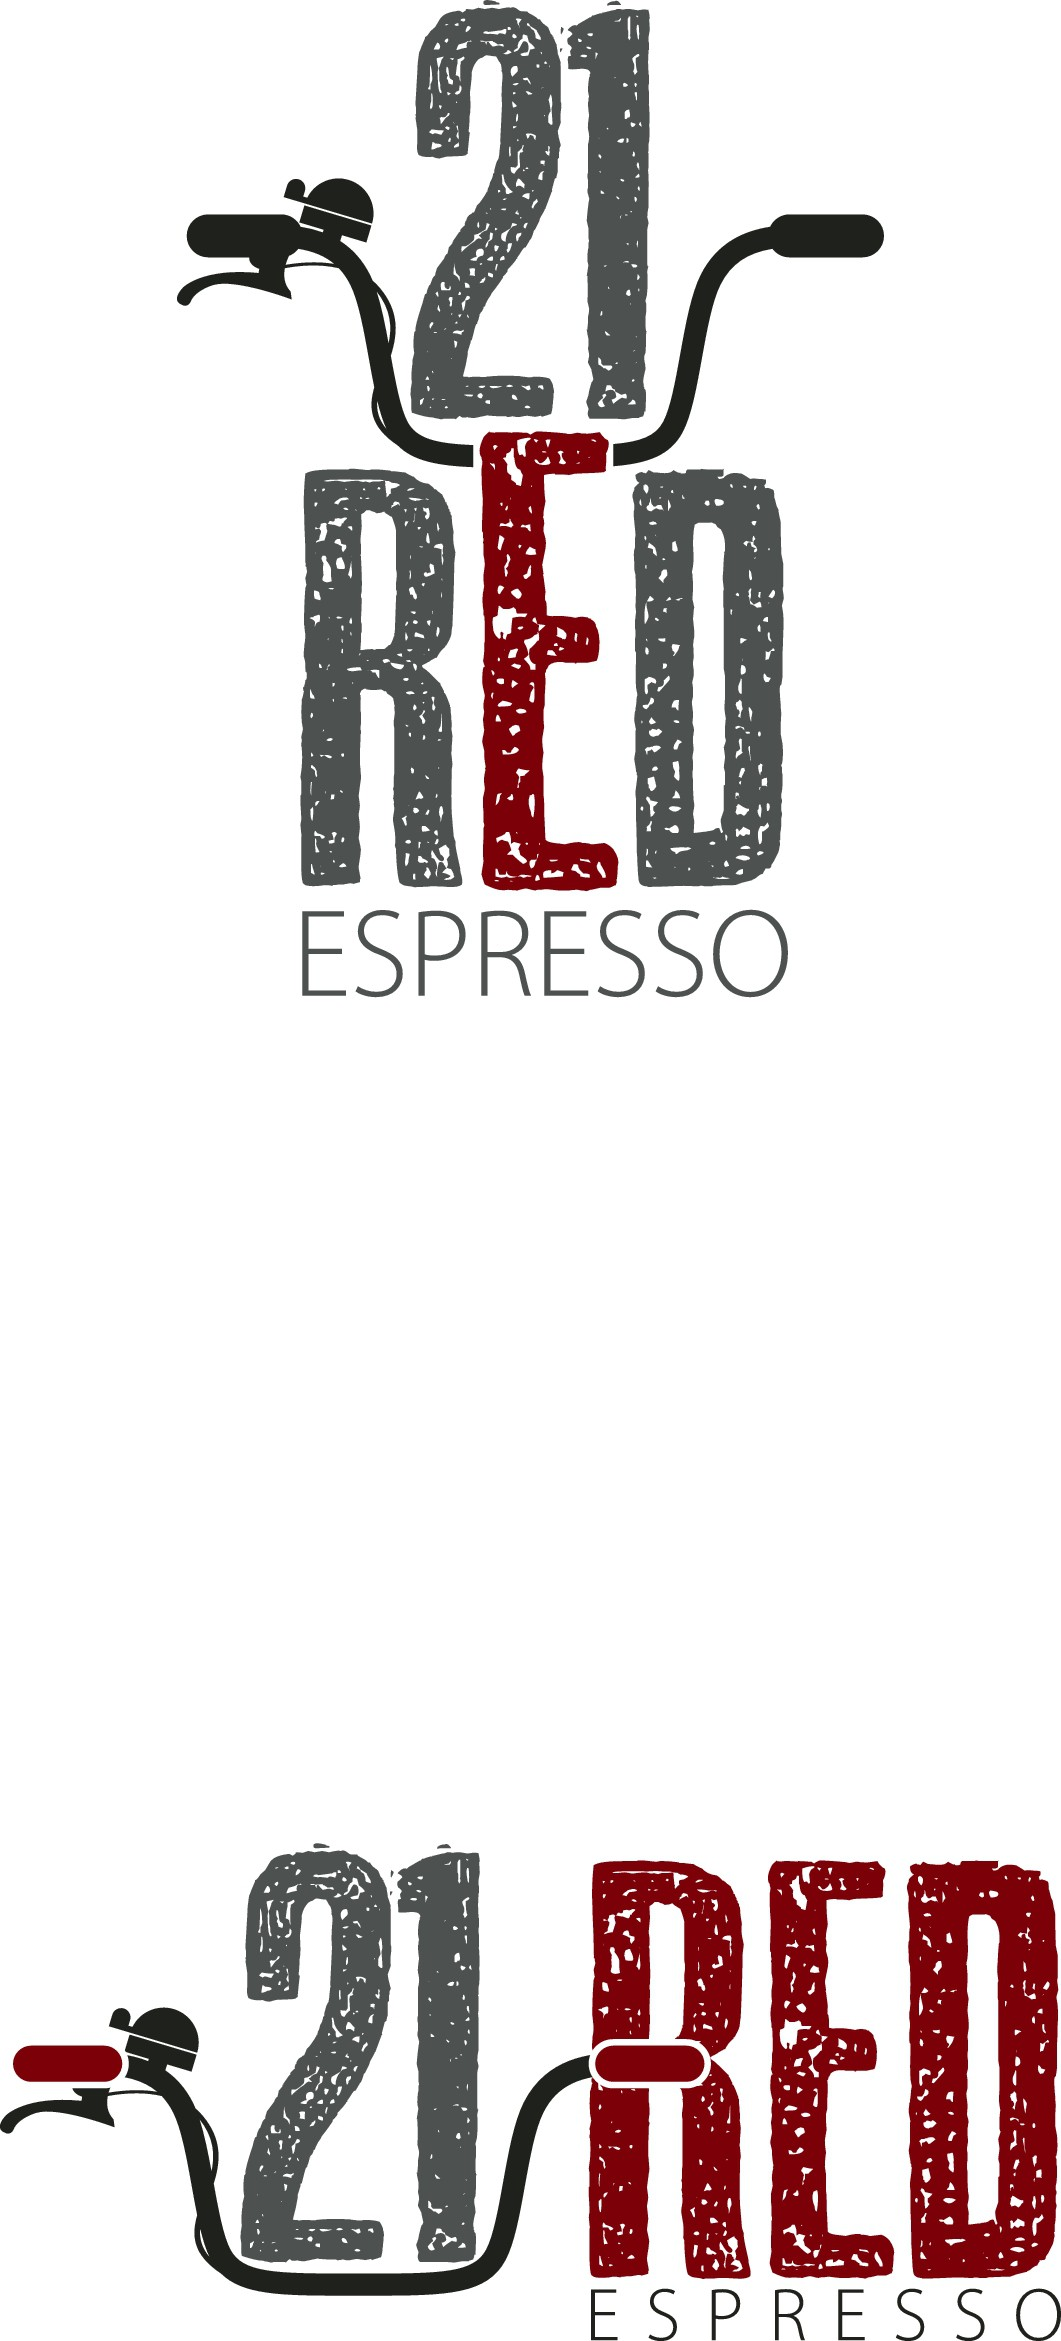 Create an industrial kind of logo for funky espresso bar